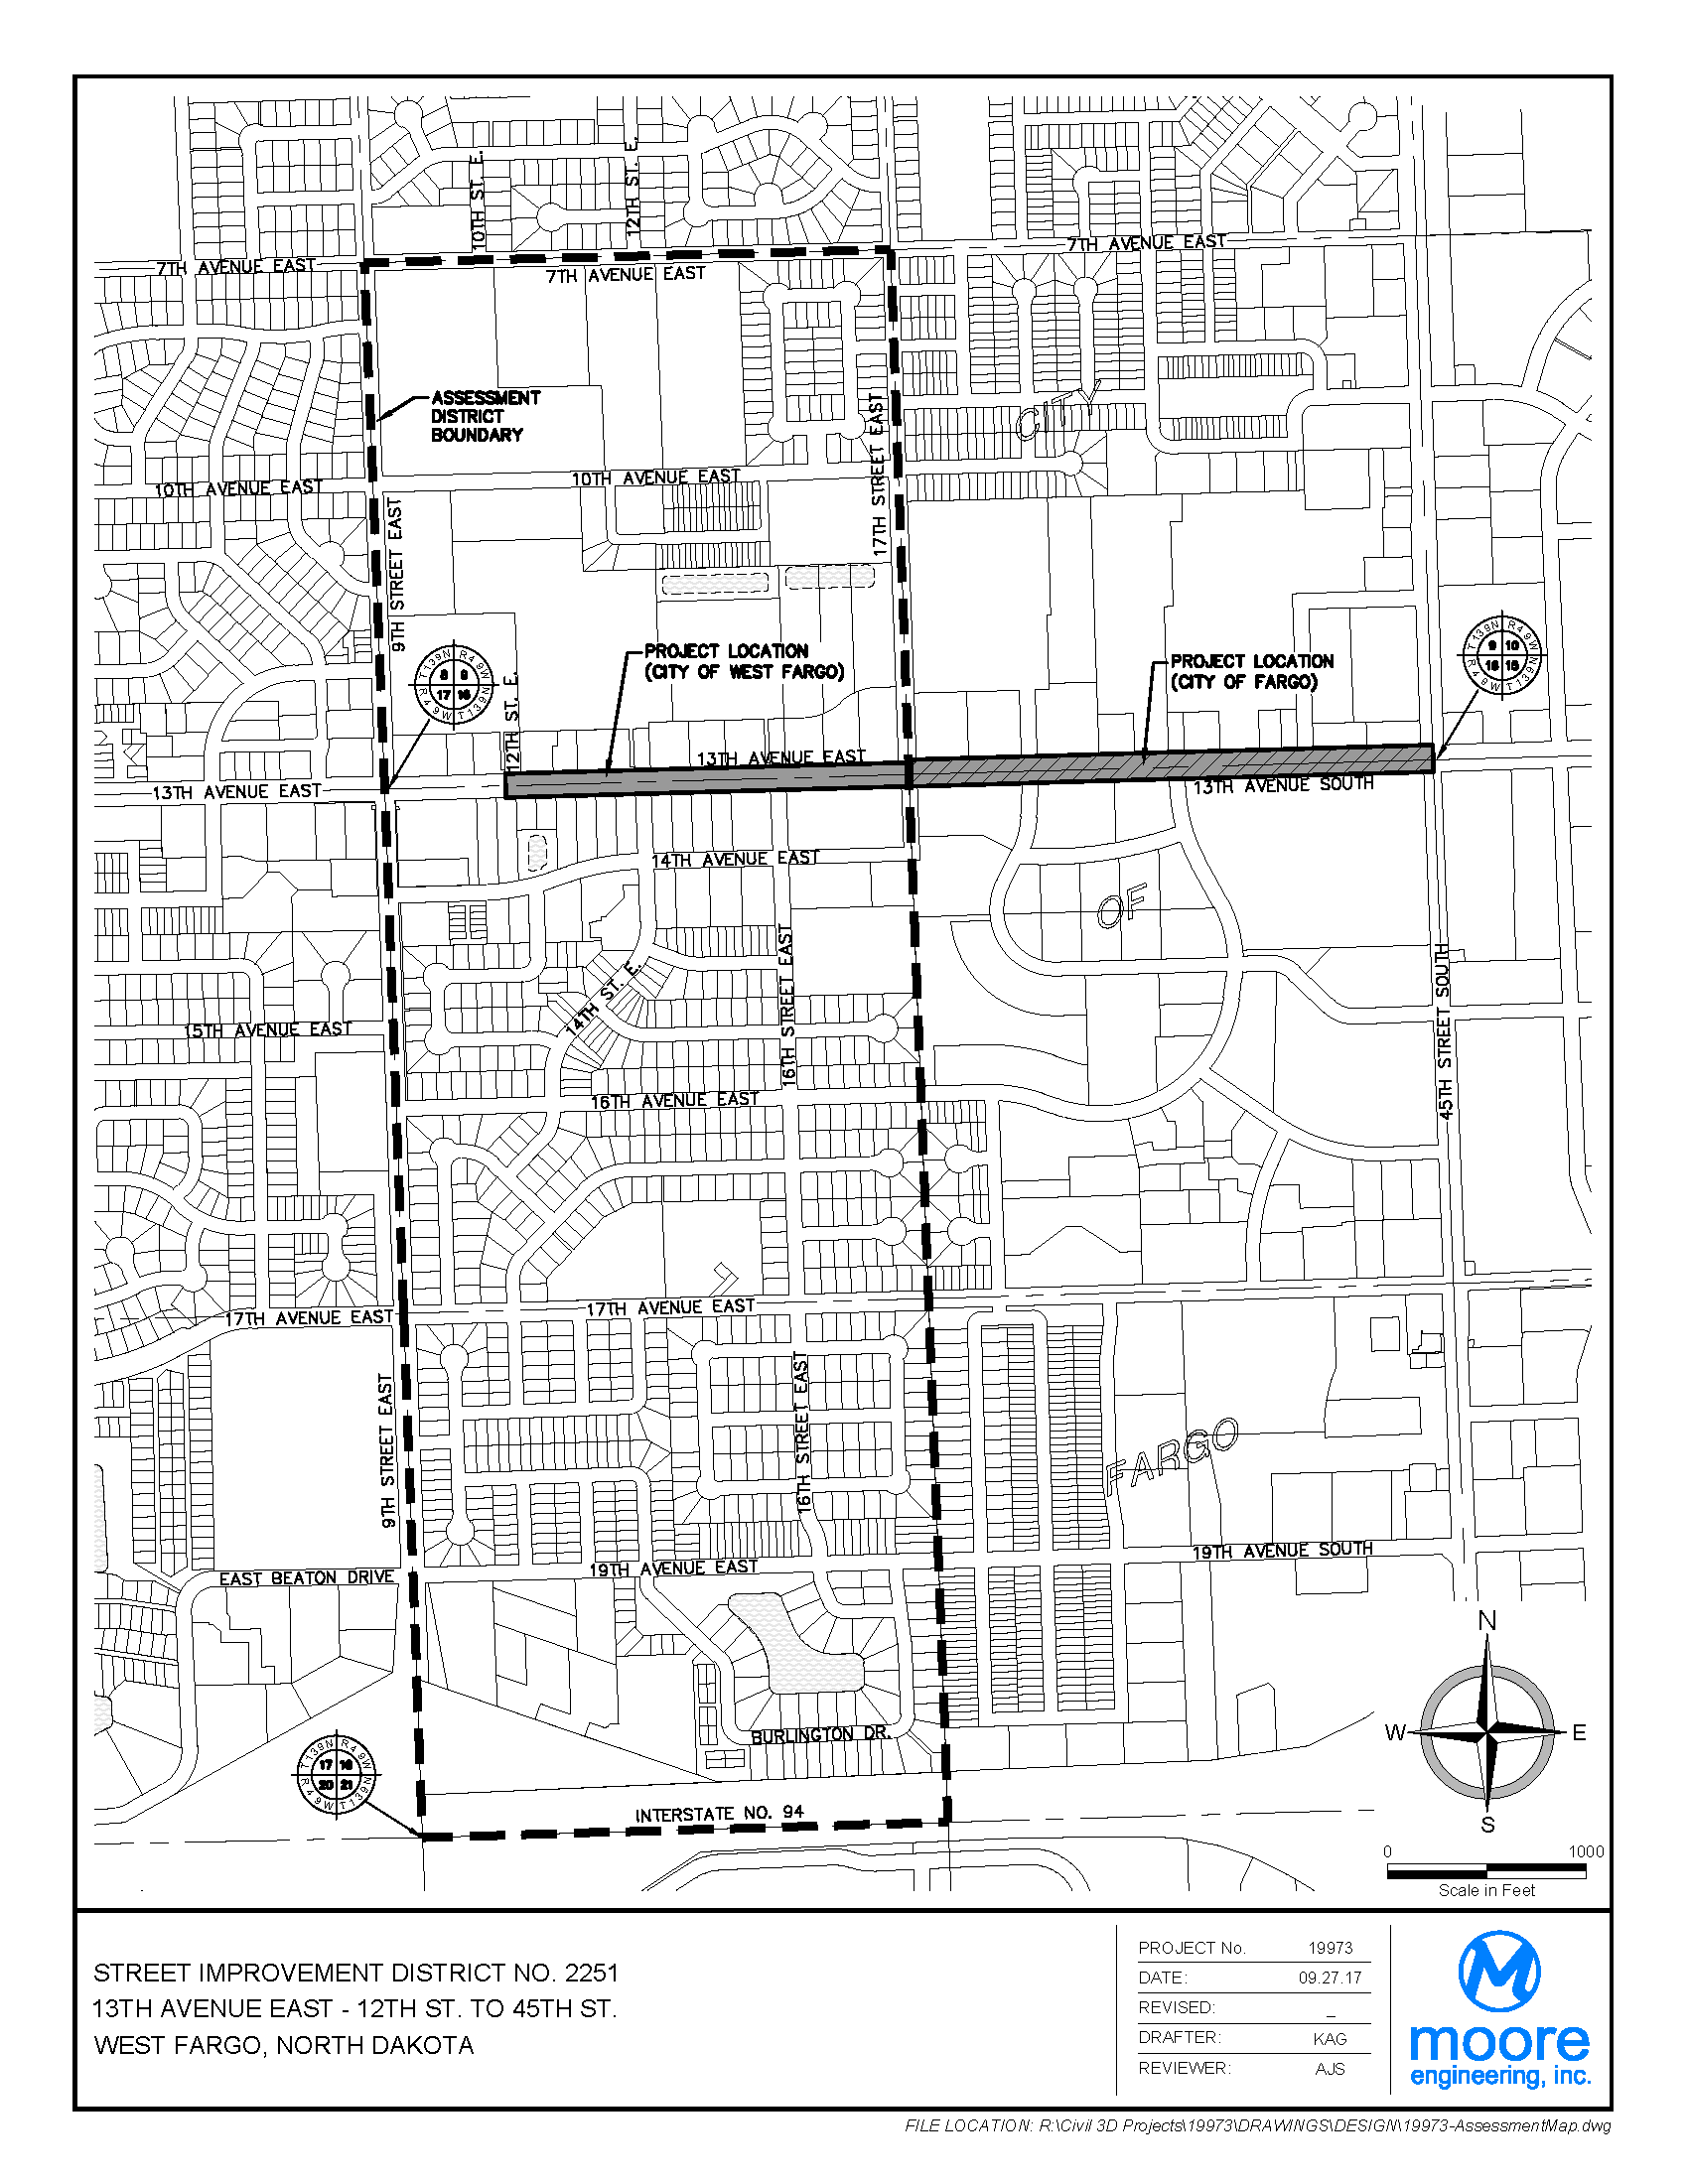 District No. 2251 13th Avenue E. - 12th to 17th Street E. Assessment District Boundary Map